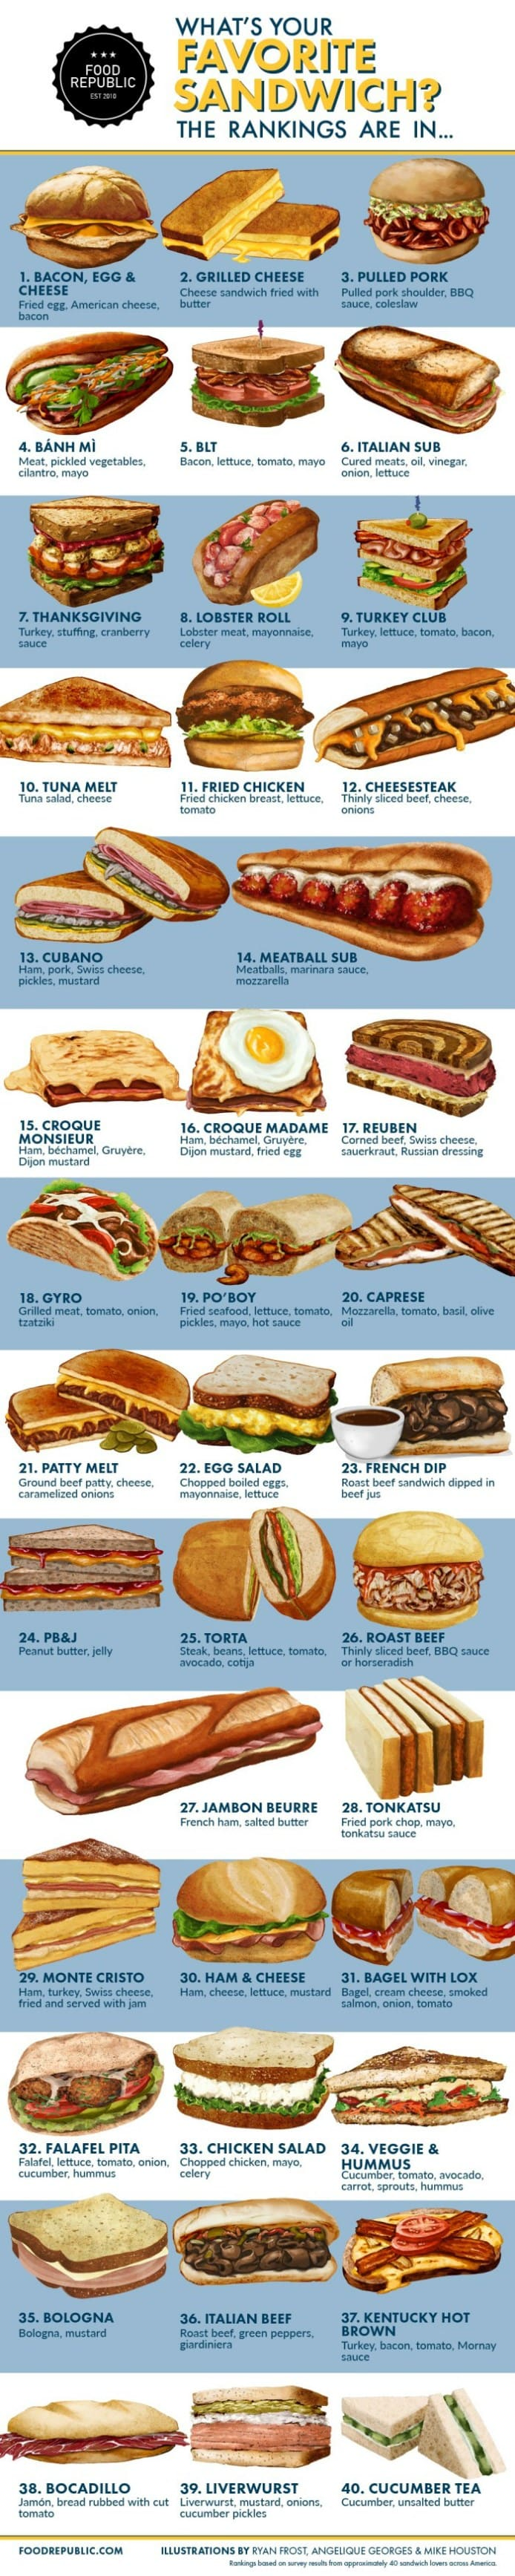 Sandwiches Infographic